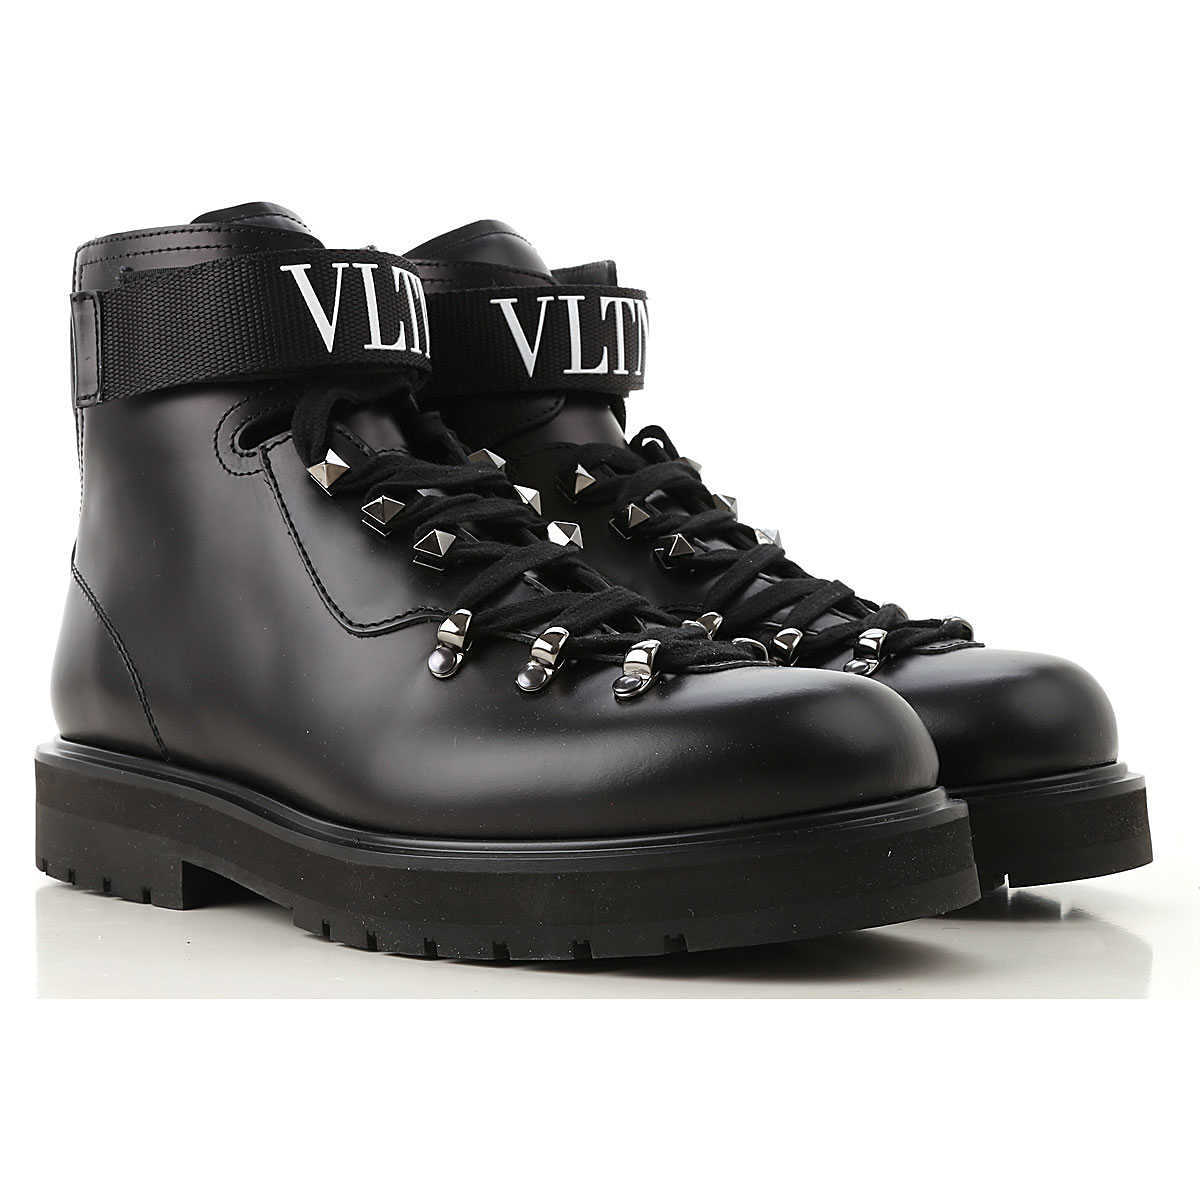 Valentino Garavani Boots for Men Booties On Sale in Outlet UK - GOOFASH